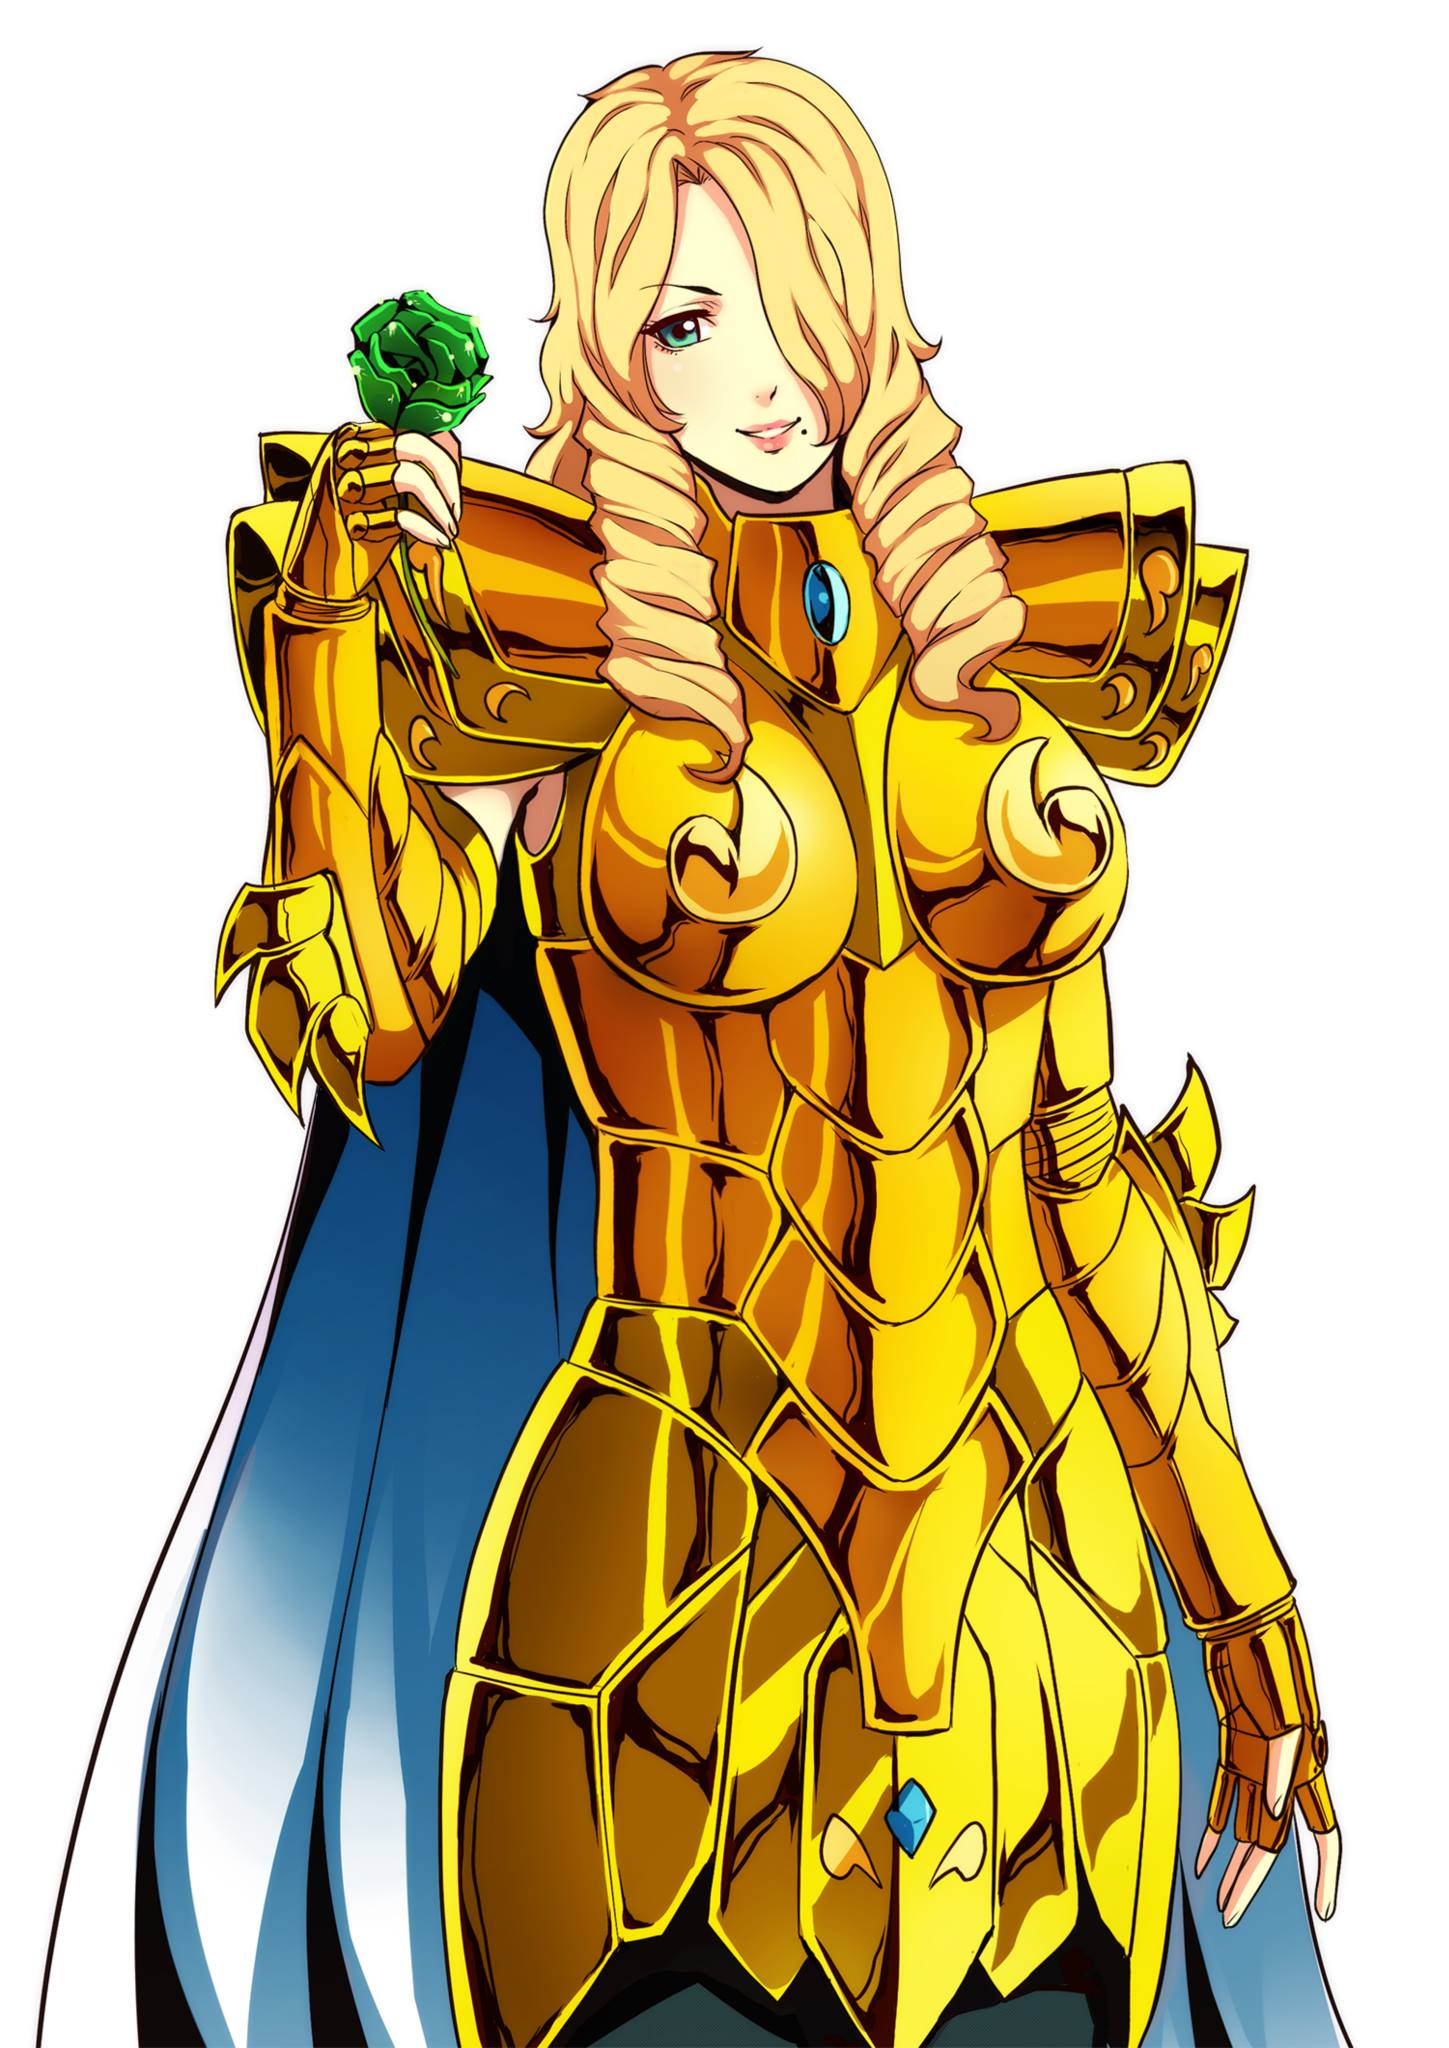 1girl armor blonde_hair blue_eyes drill_hair flower gauntlets gold_armor gold_cloth gold_saint hair_over_one_eye highres holding holding_flower long_hair looking_at_viewer saint_seiya shoulder_armor simple_background solo spaulders white_background